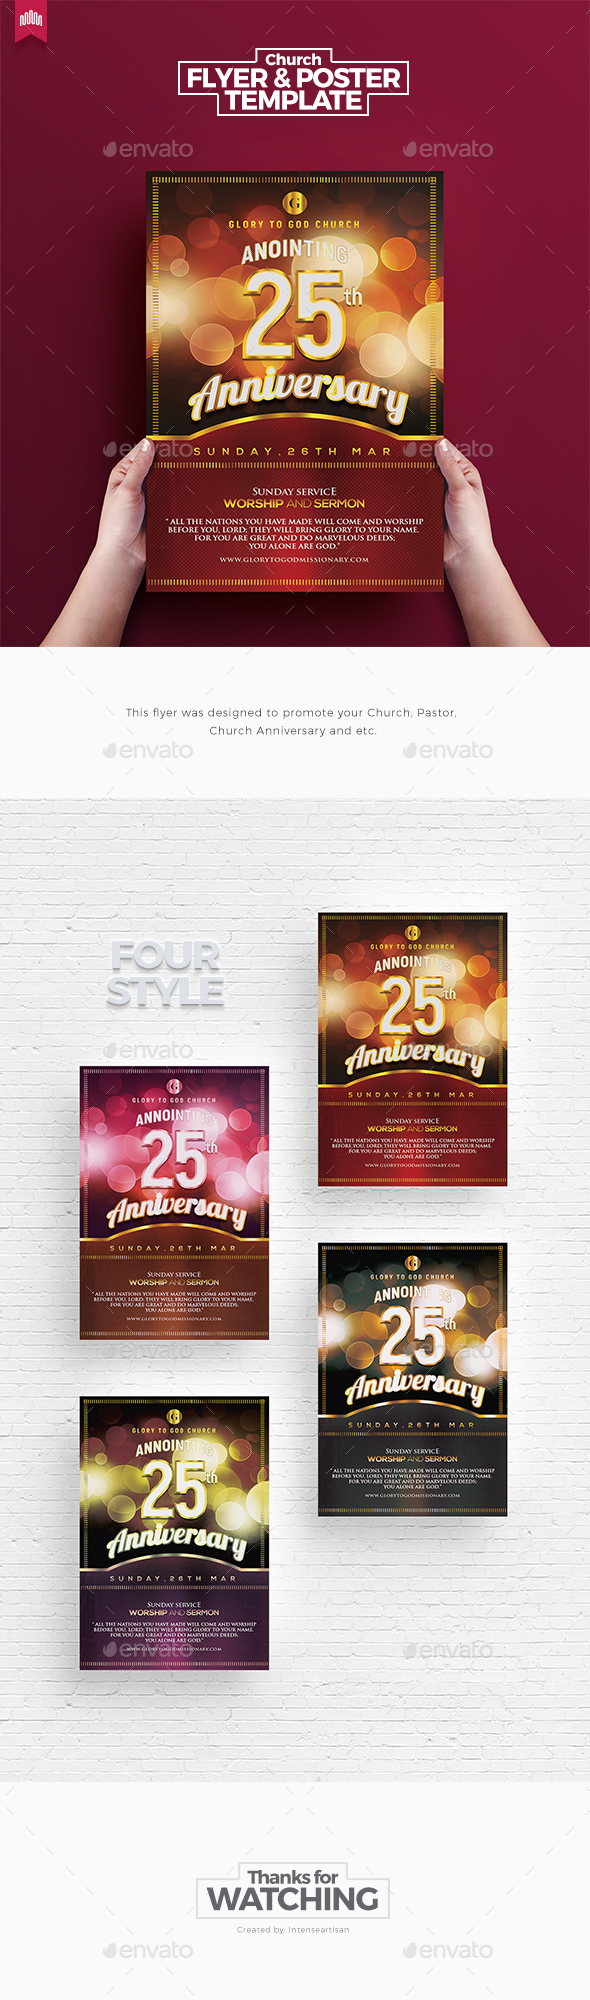 Church Anniversary - Flyer Template - Church Flyers